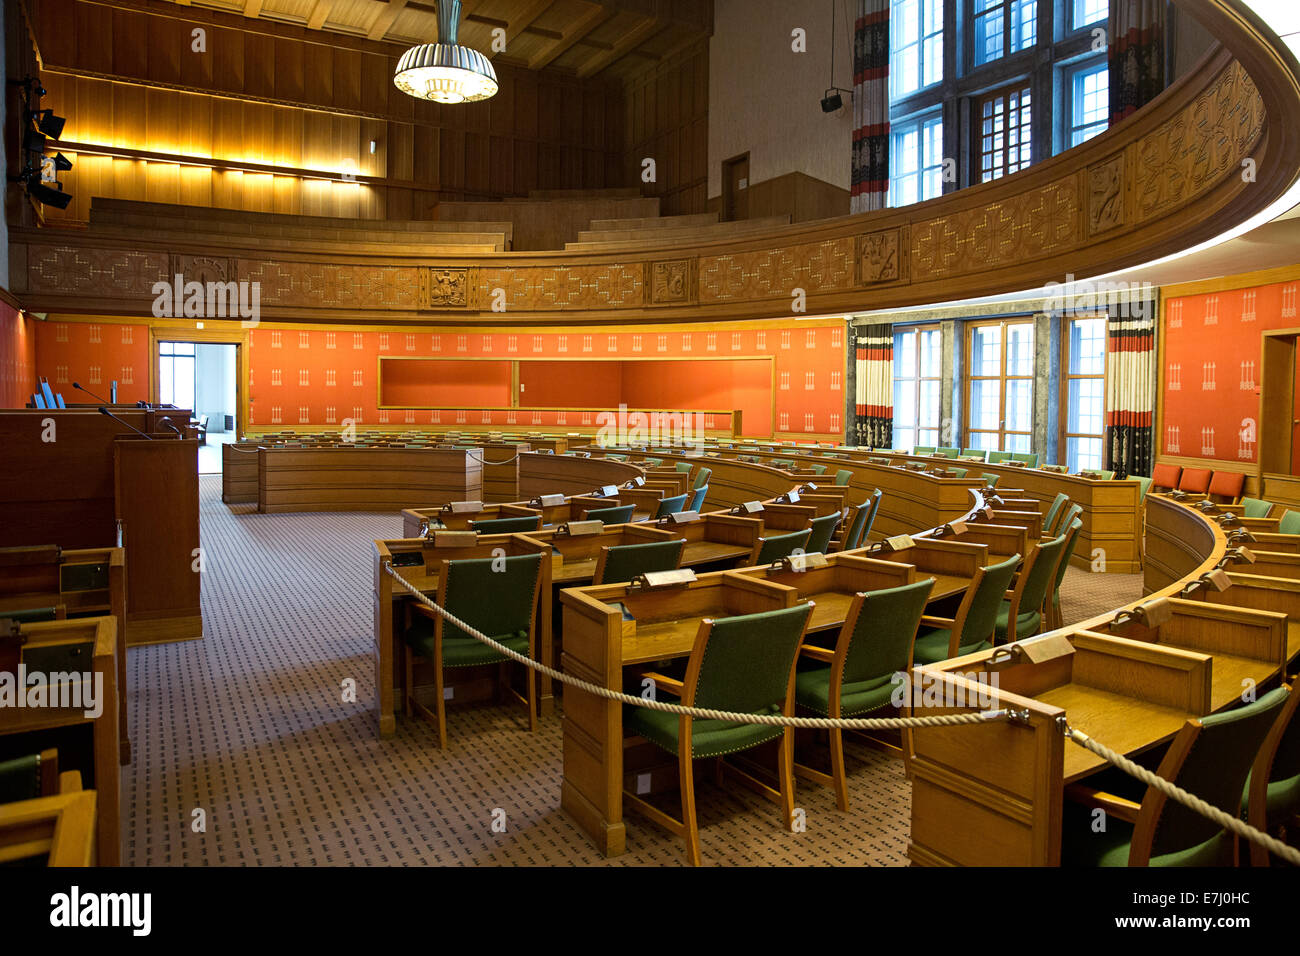 Oslo city Hall. The City Council chambers. Oslo, Norway. - Stock Image